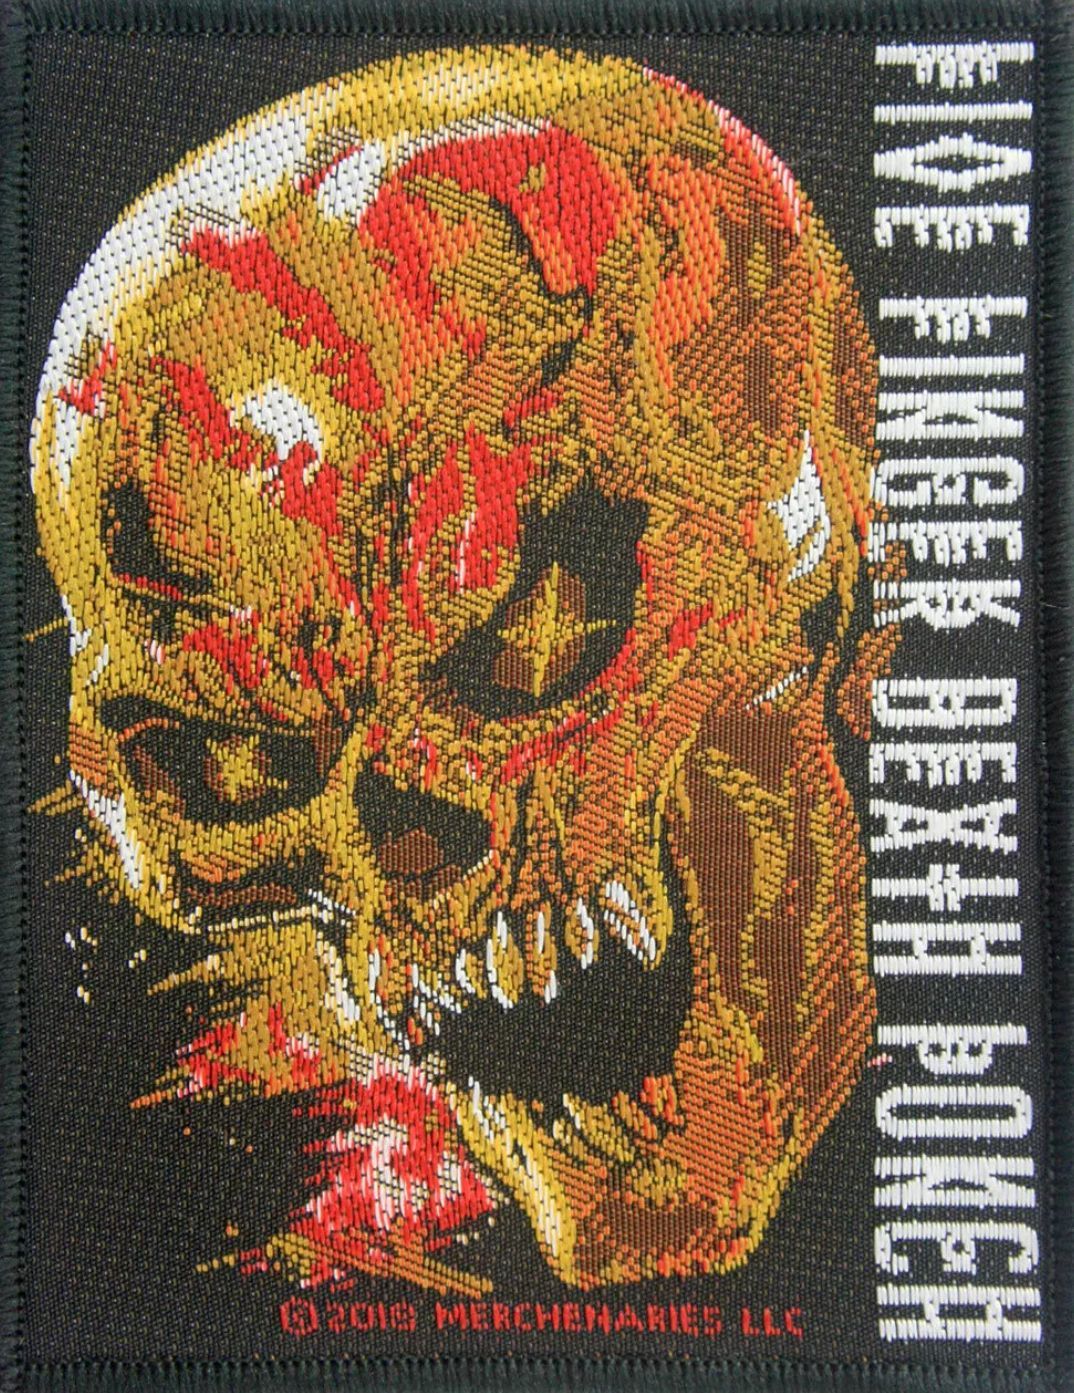 FIVE FINGER DEATH PUNCH IRON or SEW-ON PATCH